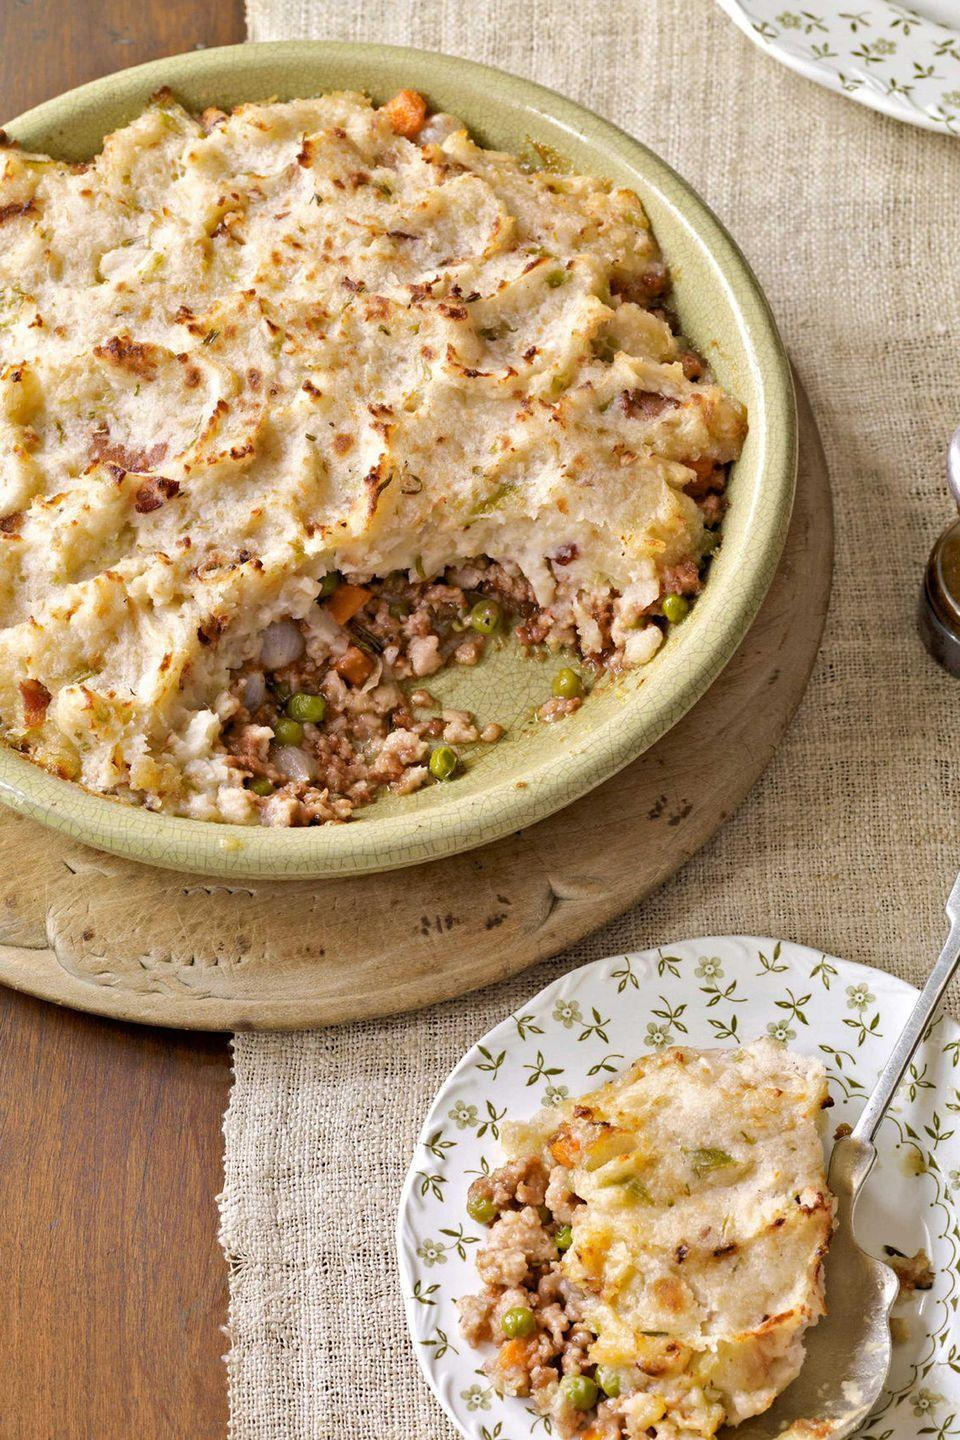 "<p>A great way to use up leftovers, Shepherd's Pie is the quintessential comfort food: mashed potatoes, veggies, and ground turkey. </p><p><strong><a href=""https://www.countryliving.com/food-drinks/recipes/a3008/shepherds-pie-recipe/"" rel=""nofollow noopener"" target=""_blank"" data-ylk=""slk:Get the recipe"" class=""link rapid-noclick-resp"">Get the recipe</a>.</strong></p>"